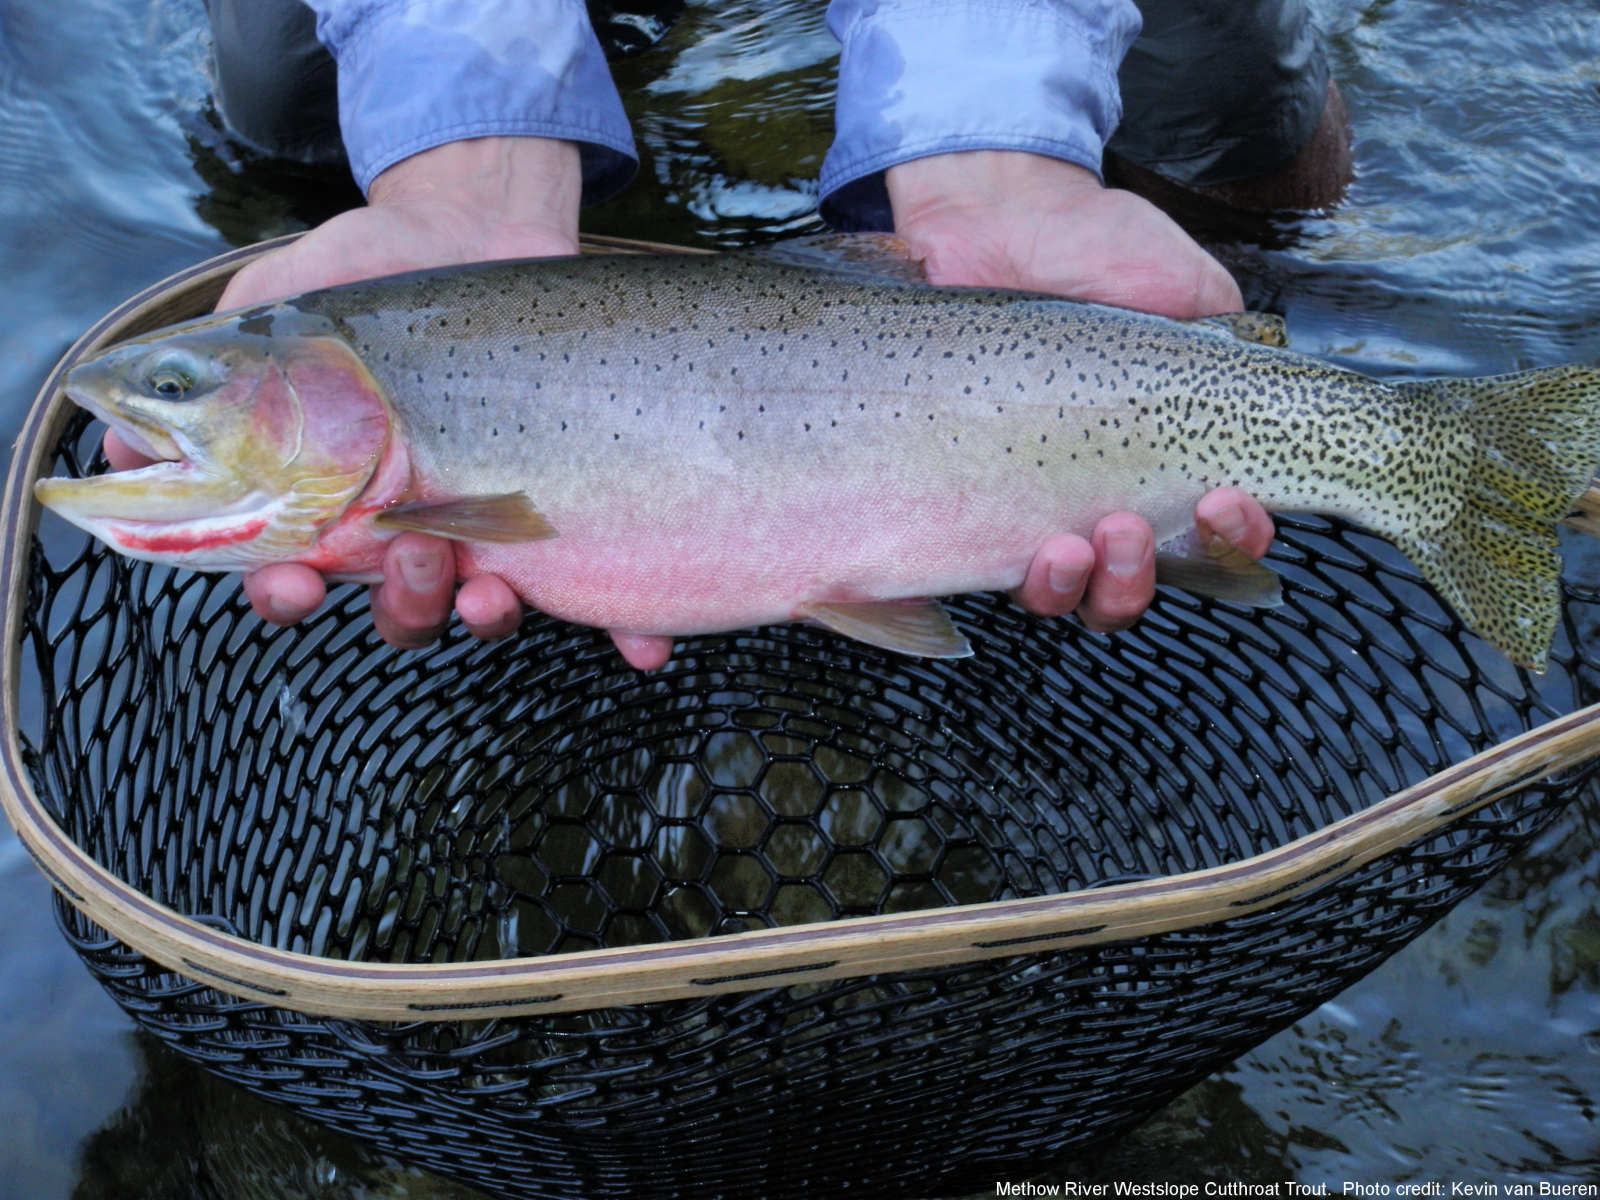 Westslope Cutthroat Trout – Western Native Trout